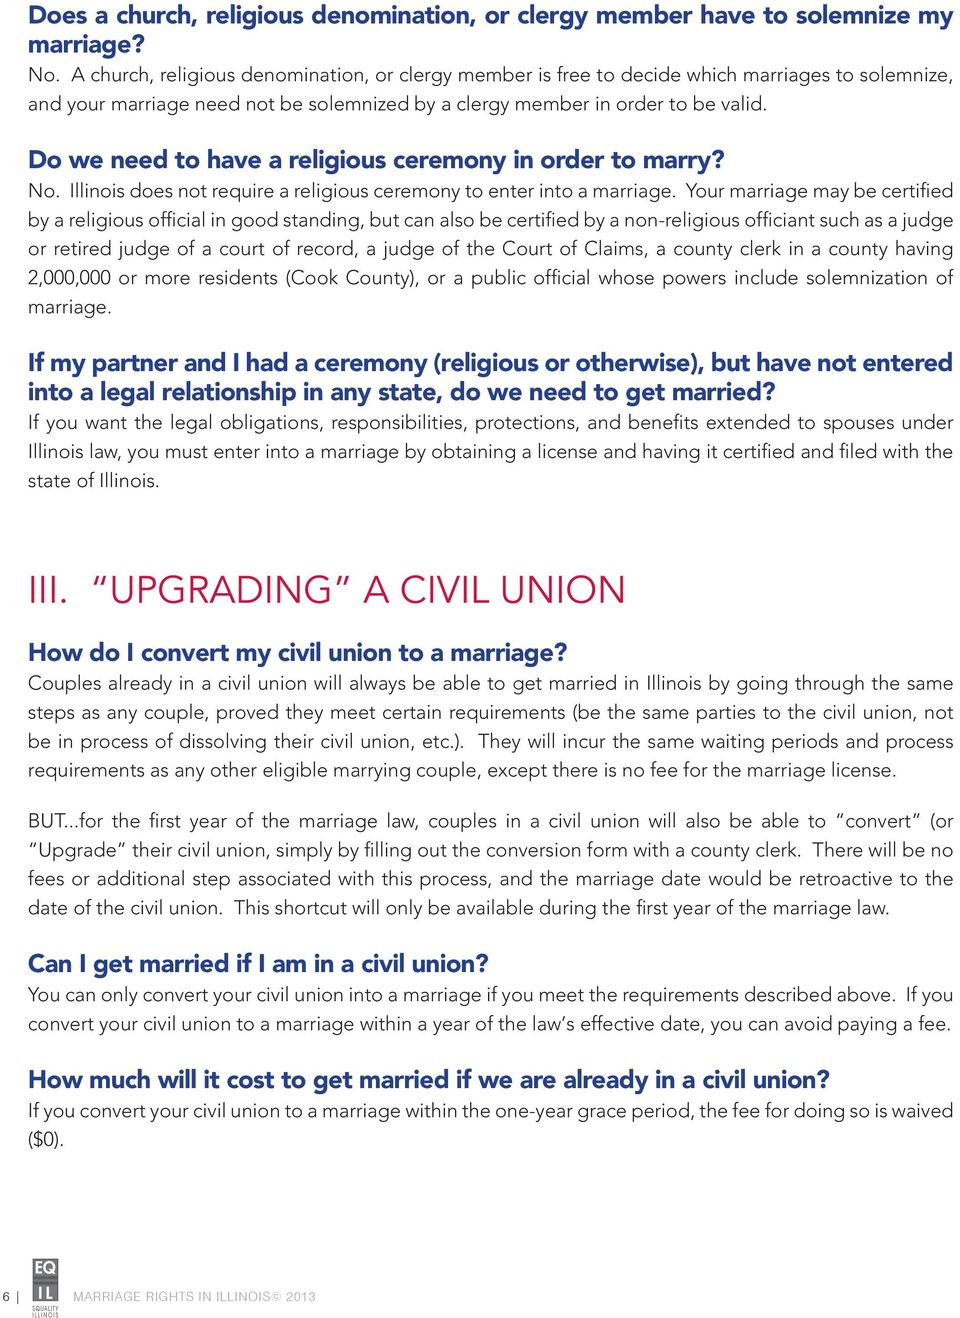 Do we need to have a religious ceremony in order to marry? No. Illinois does not require a religious ceremony to enter into a marriage.